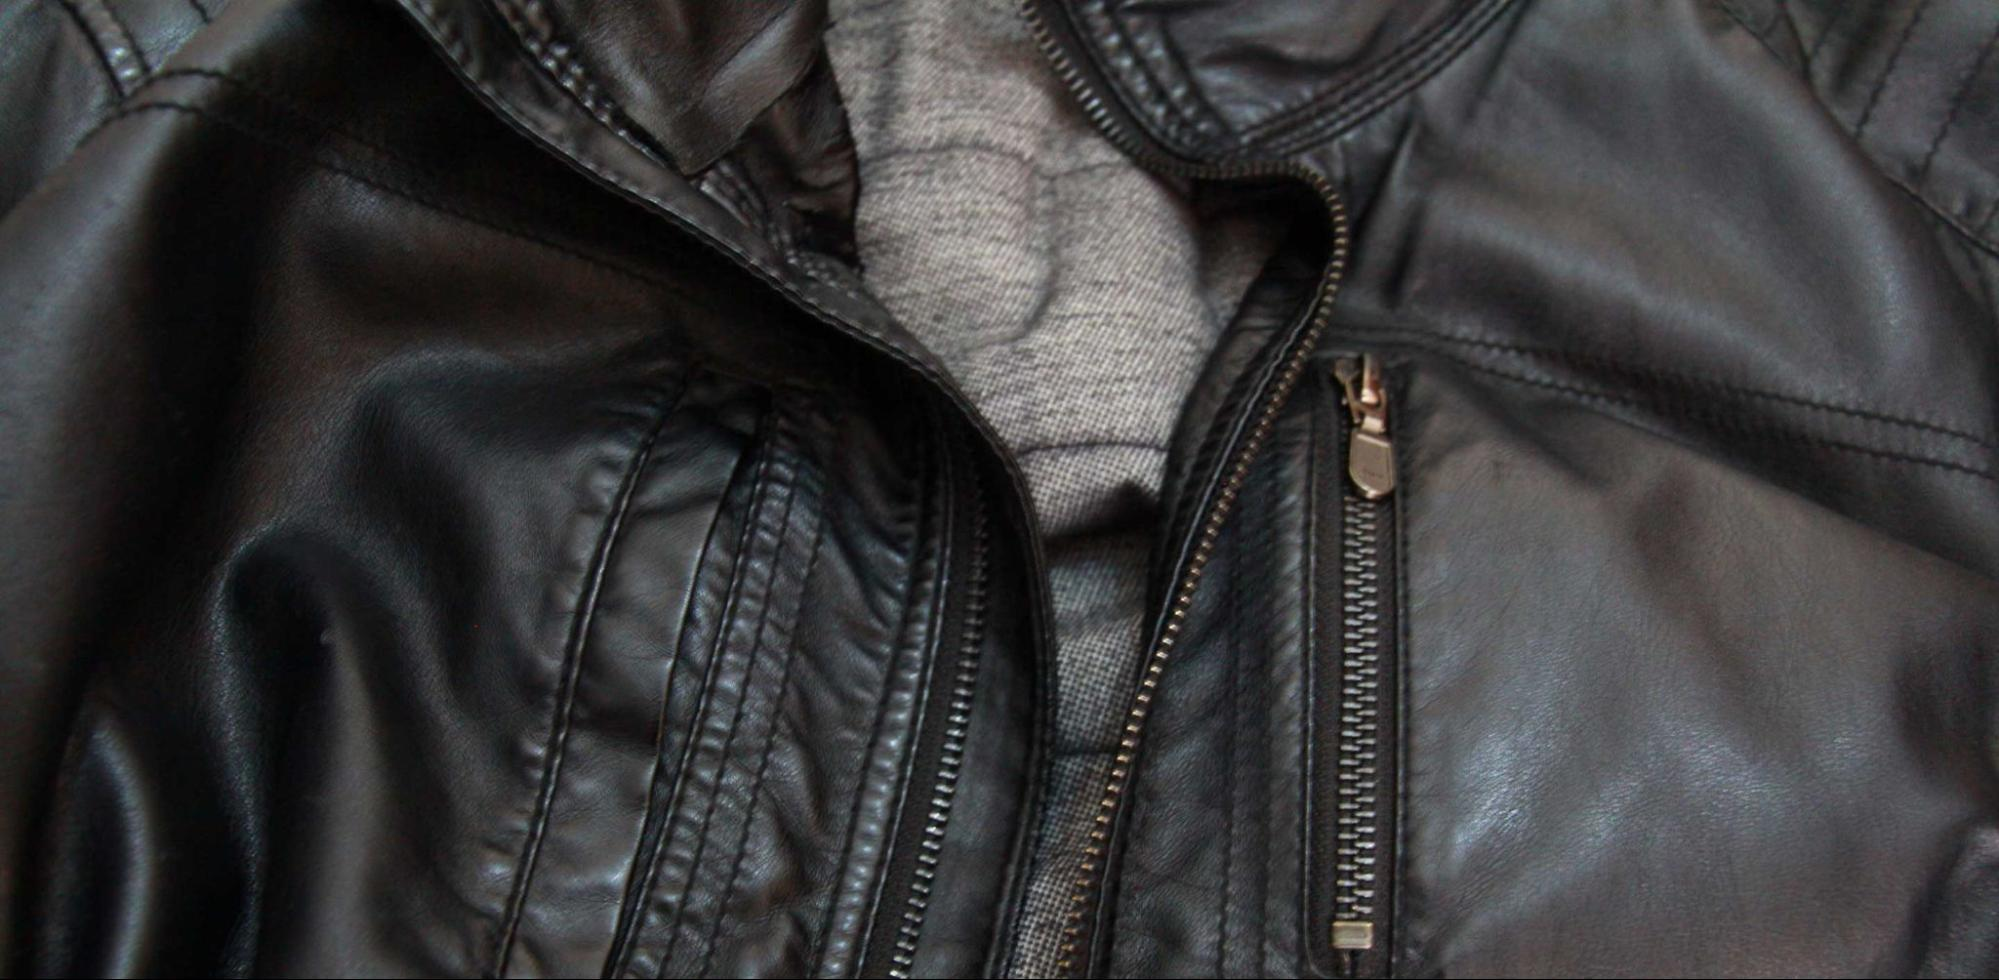 How Do You Get The Moisture Out Of Leather?